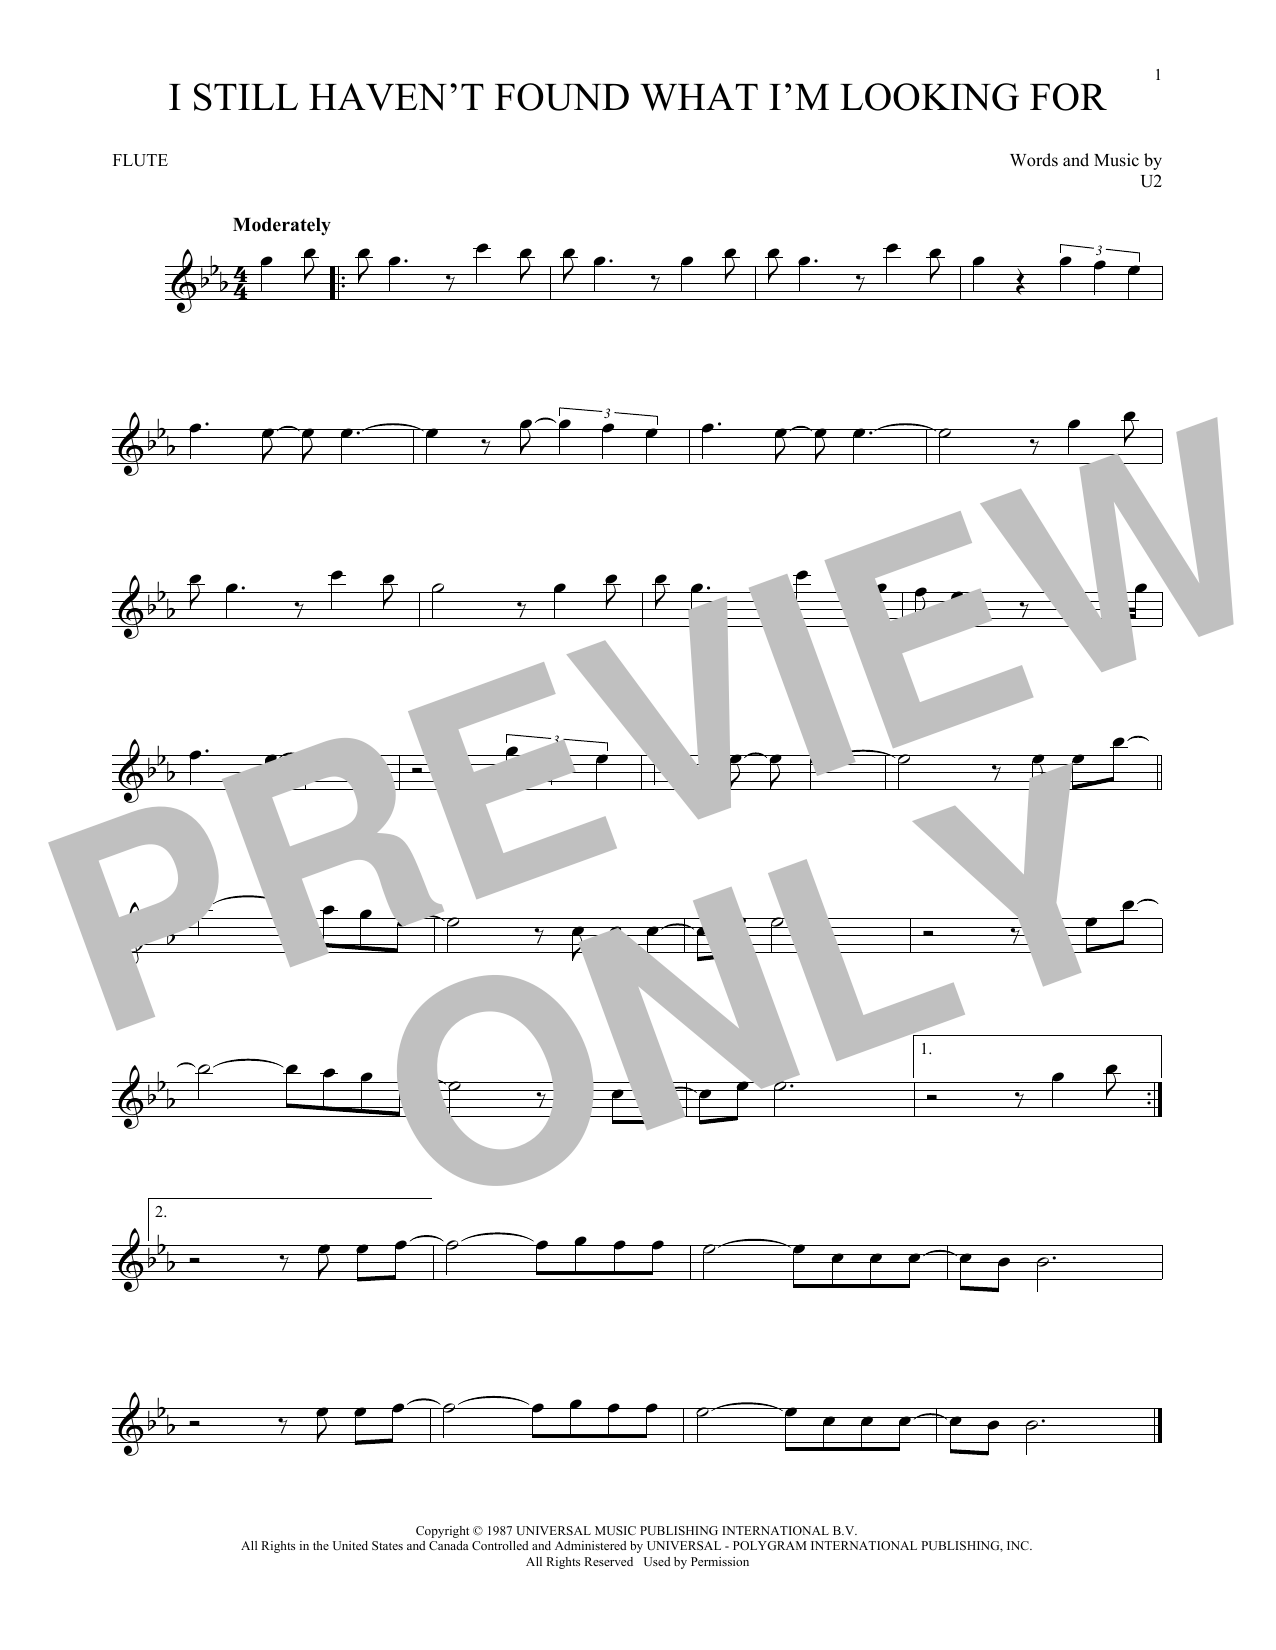 I Still Haven't Found What I'm Looking For (Flute Solo)